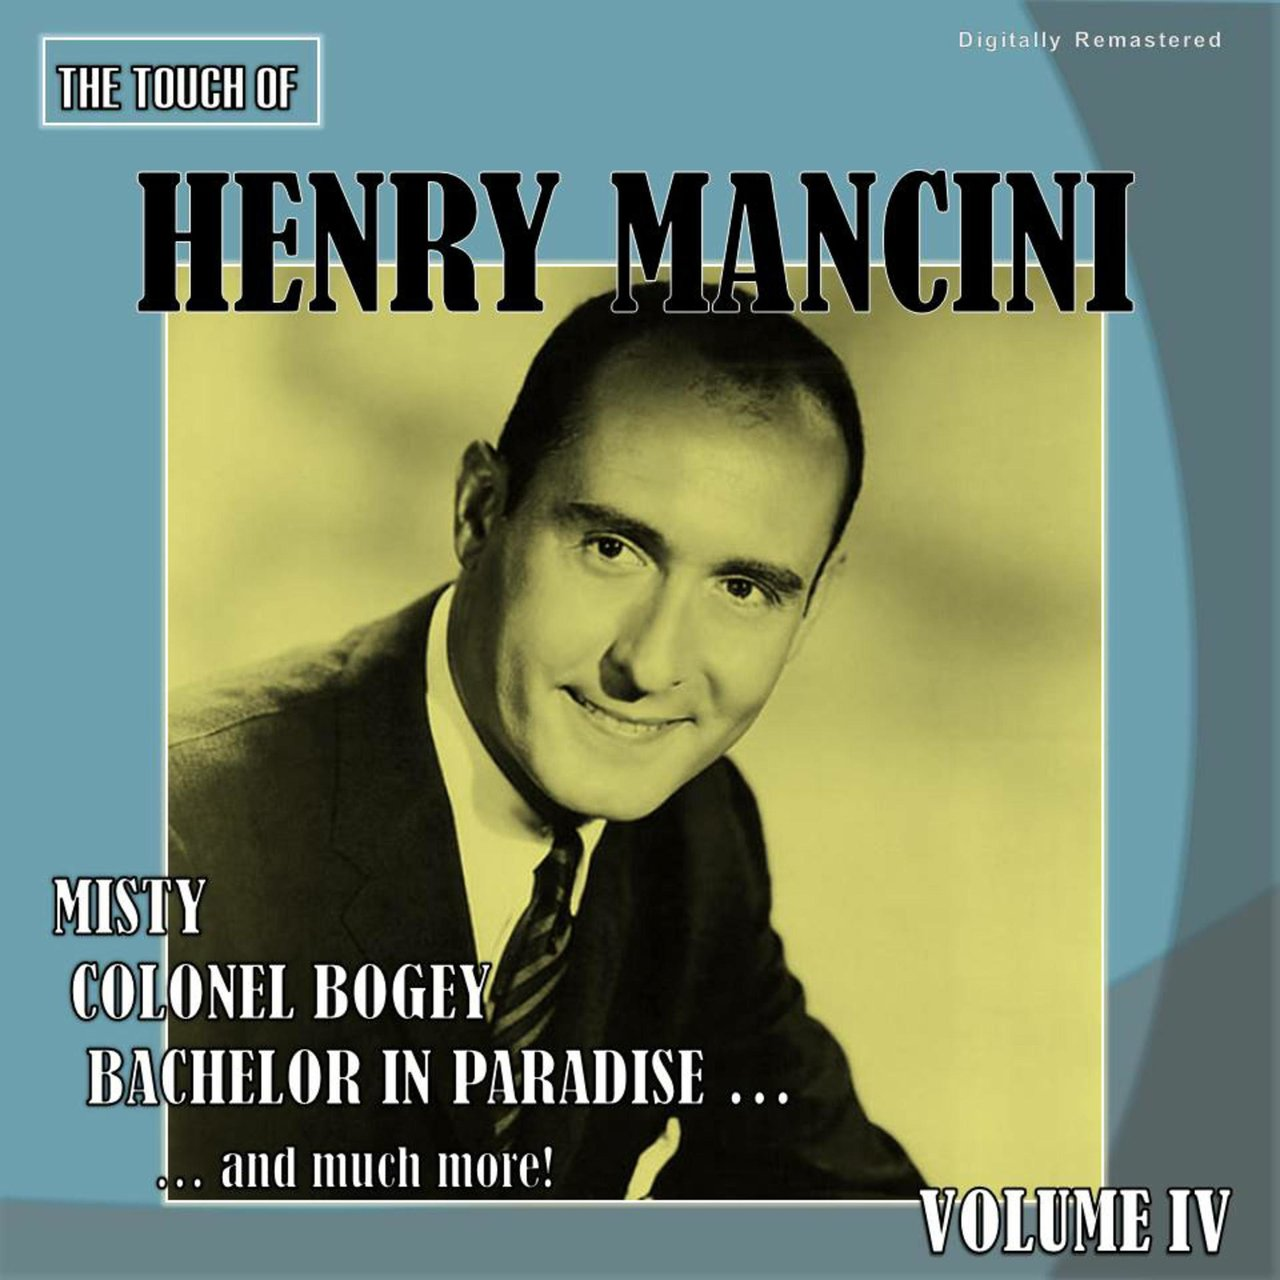 The Touch of Henry Mancini, Vol. 4 (Digitally Remastered)